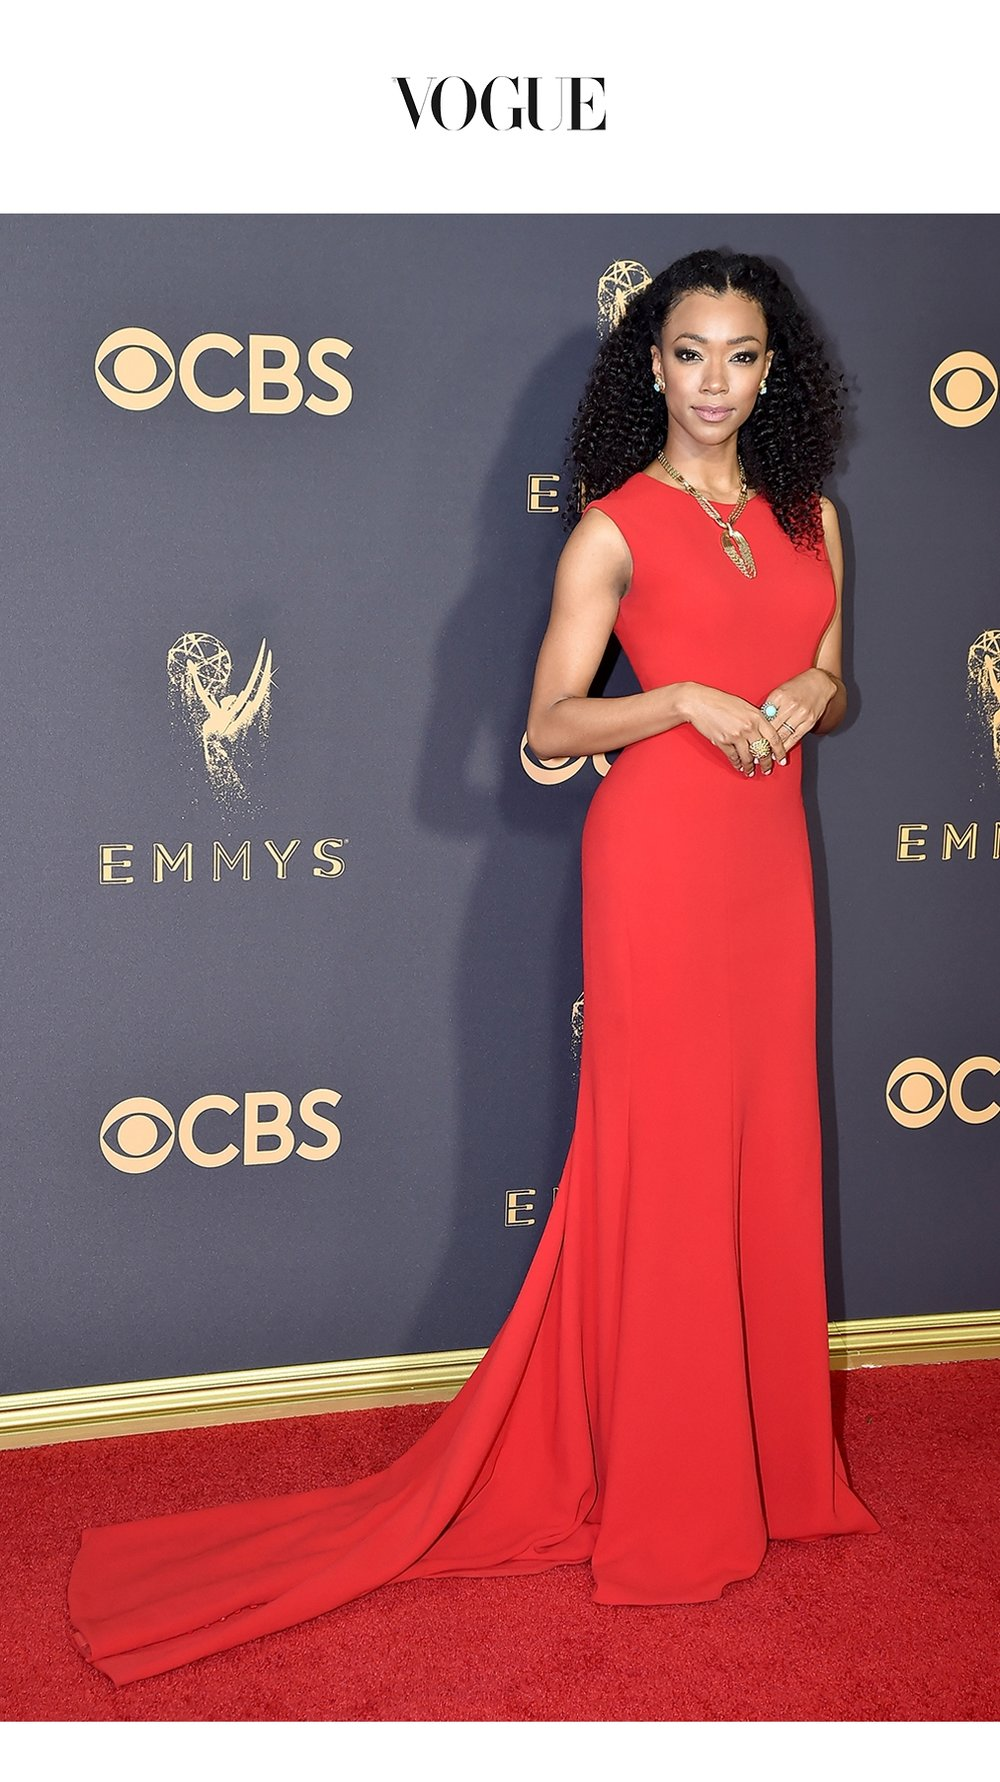 IN-THE-NEWS-WEB-EMMYS-2017-SONEQUA-MARTING-GREEN.jpg